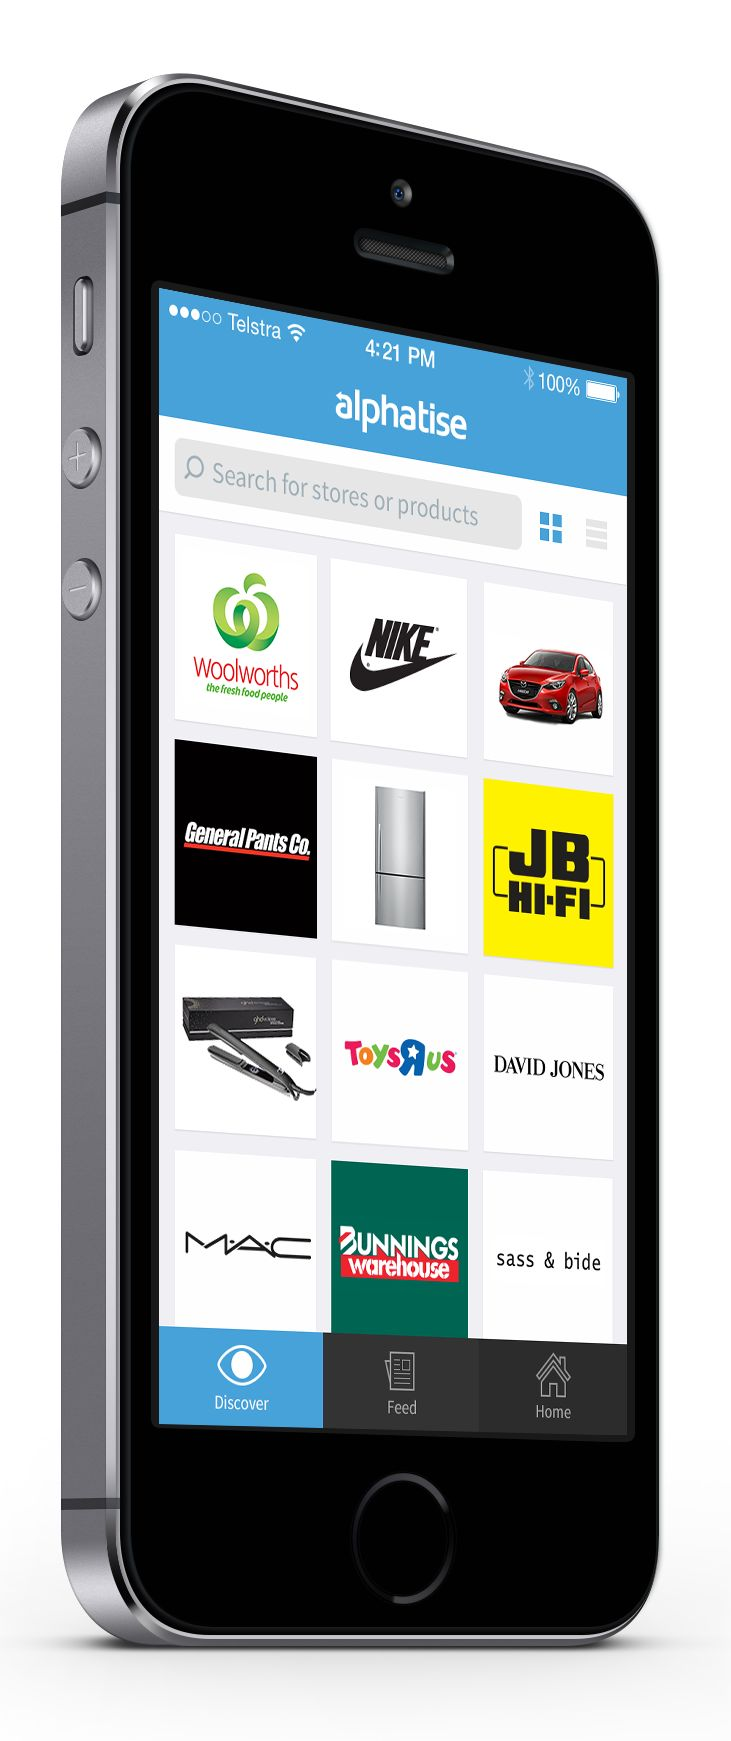 Alphatise offers shoppers access to 40,000 stores (both major retailers and local boutiques), and over 10,000,000 products, and if you can't find something, you can add it to your wish list yourself. #alphatise #shopping #app